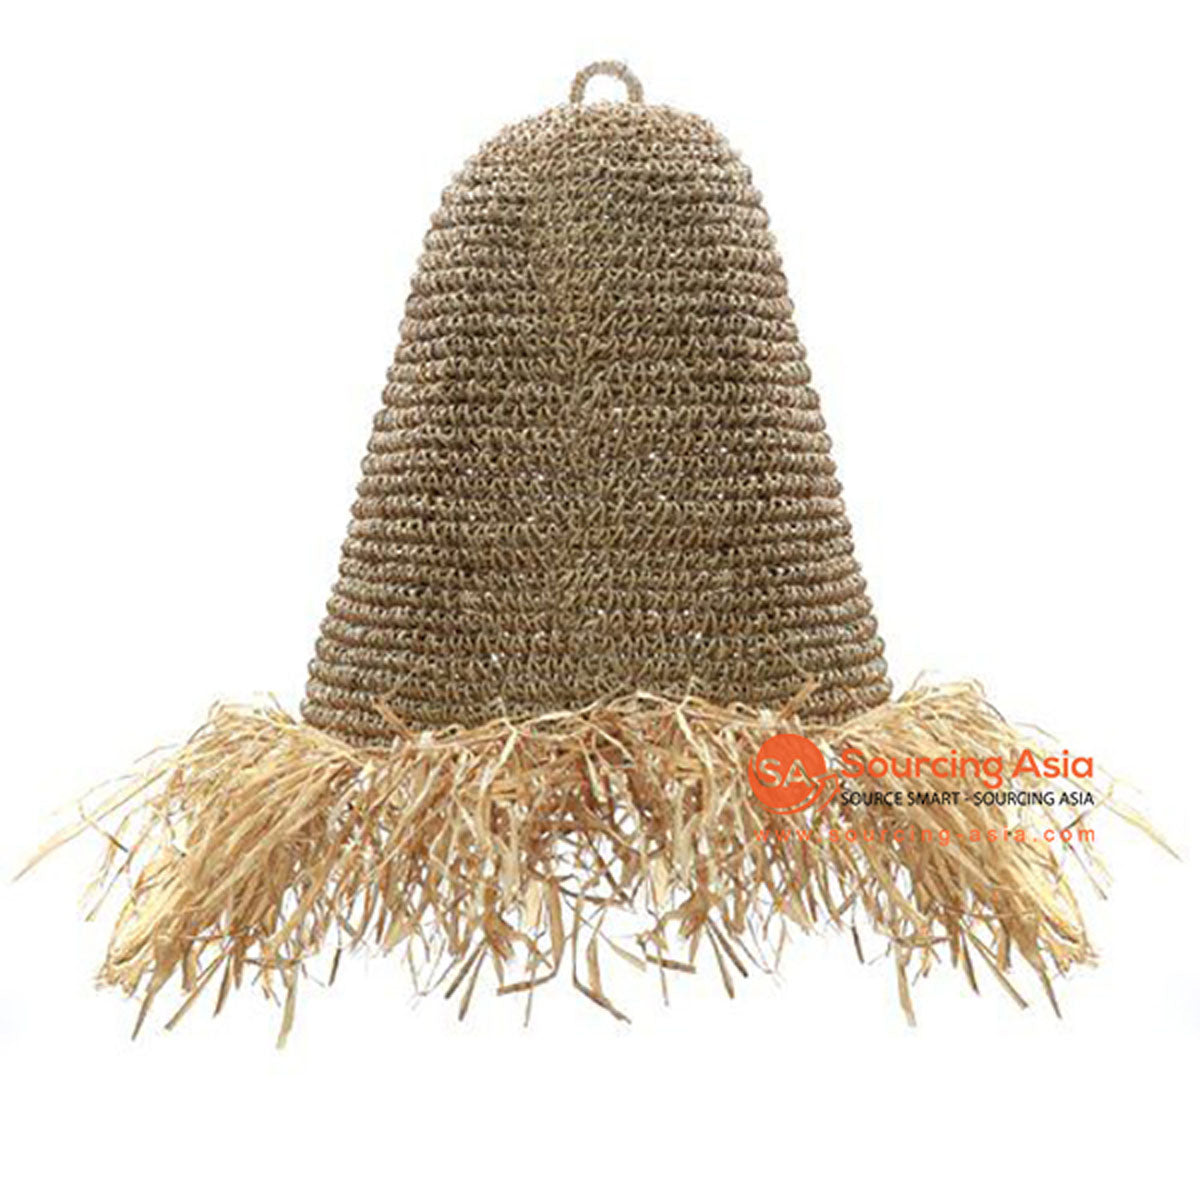 SHL063-1 NATURAL RAFFIA PENDANT LAMP